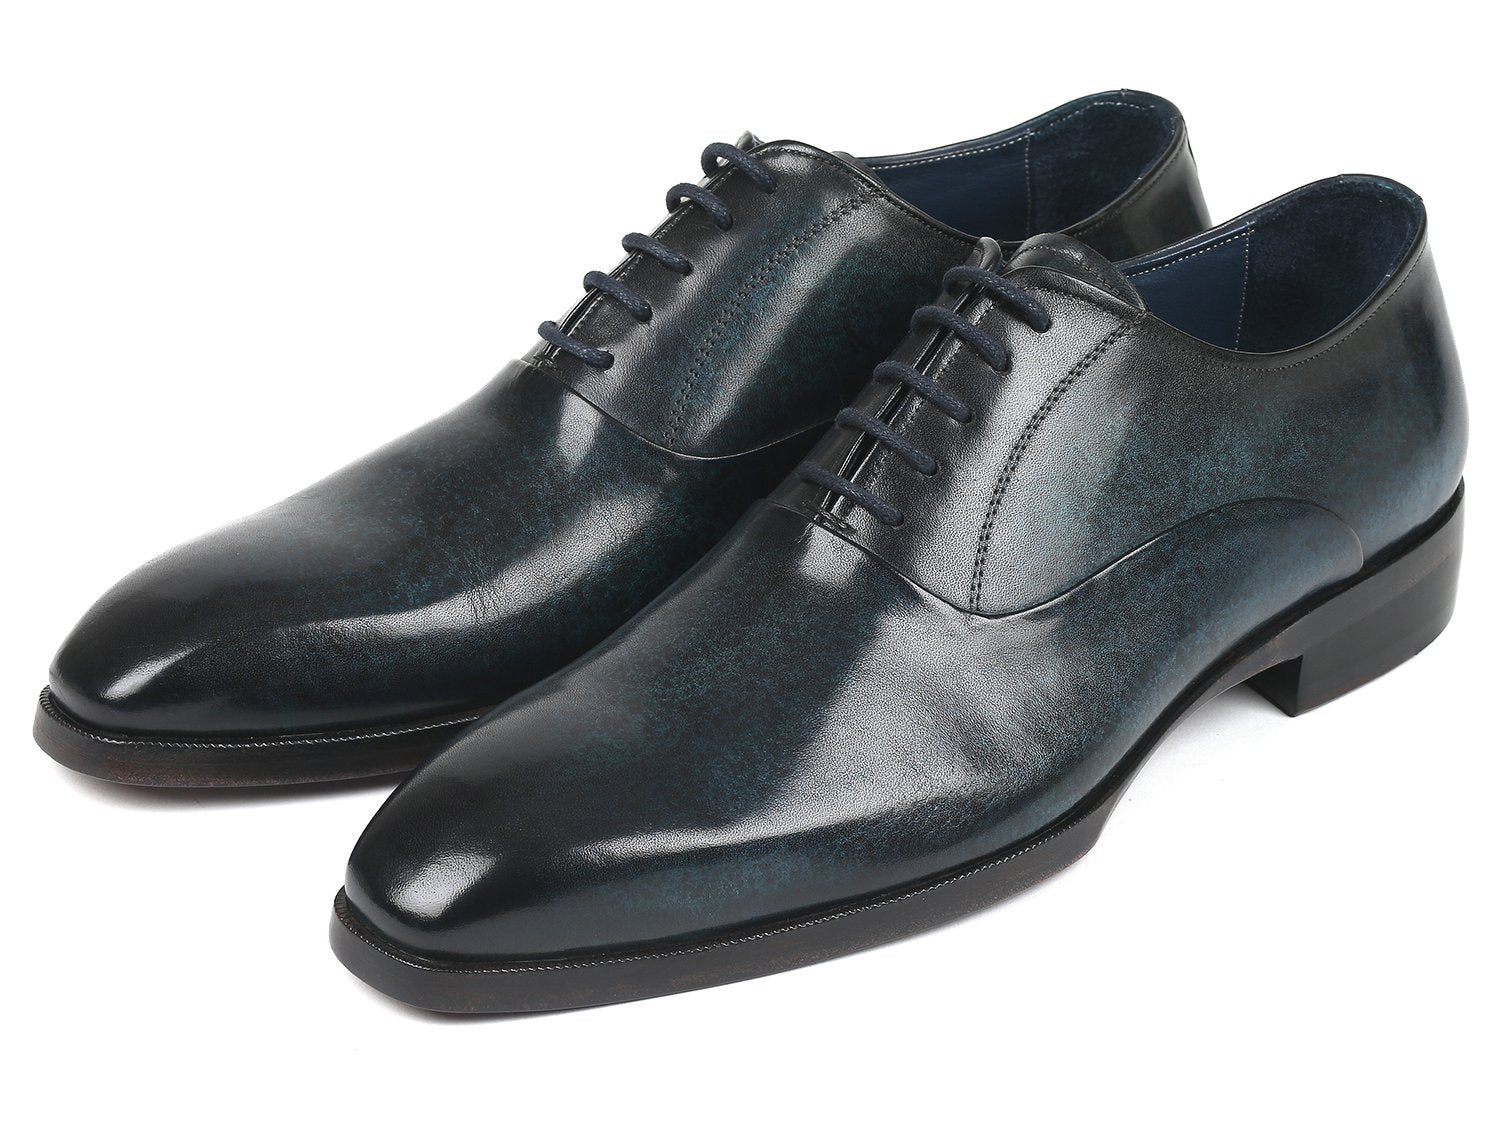 Paul Parkman Men's Plain Toe Oxfords Navy (ID#5523-NVY)